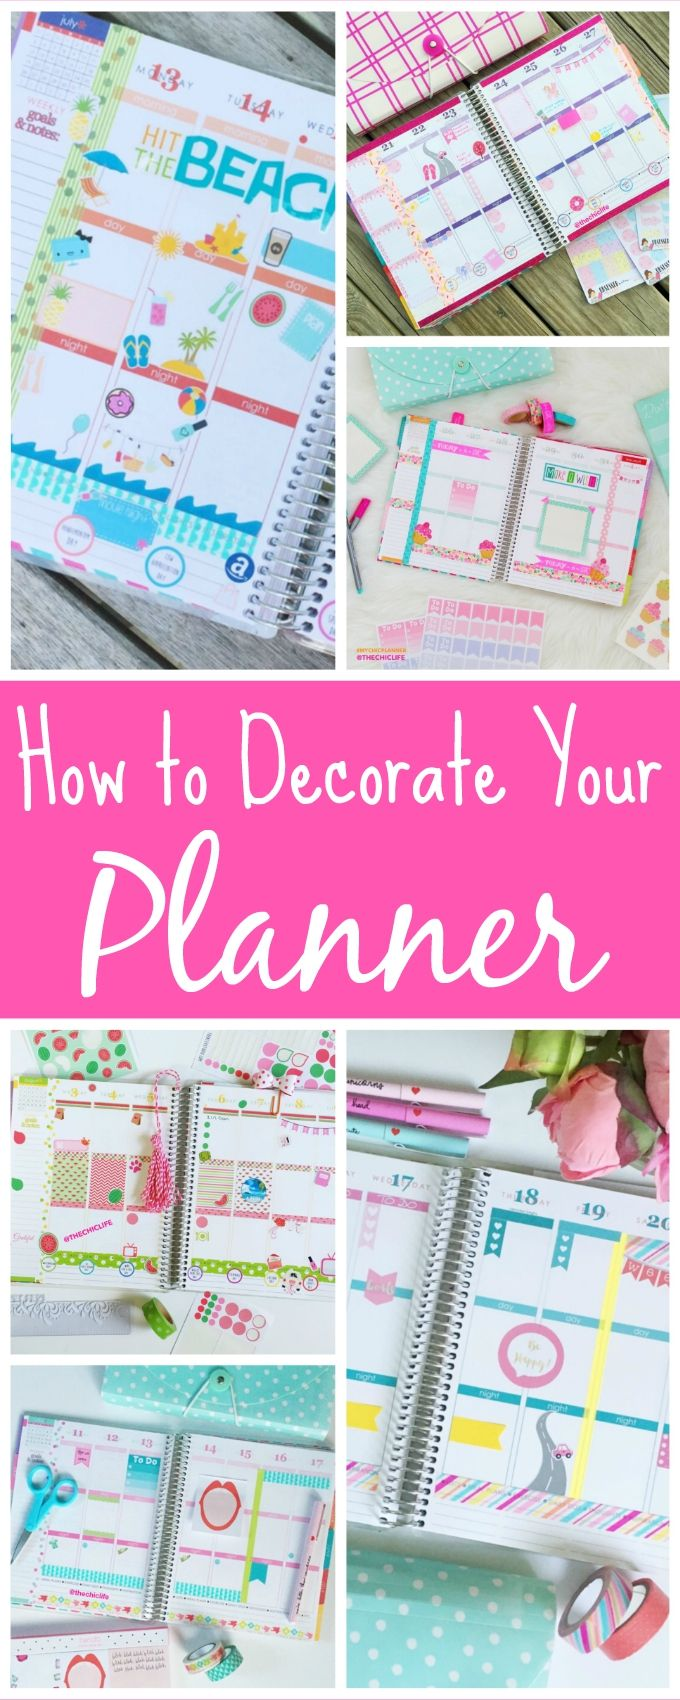 How to Decorate Your Planner - The Chic Life #mychicplanner (tips for decorating your Erin Condren Life Planner or other planner) Note: this page will be updated with new content over time so check back often!